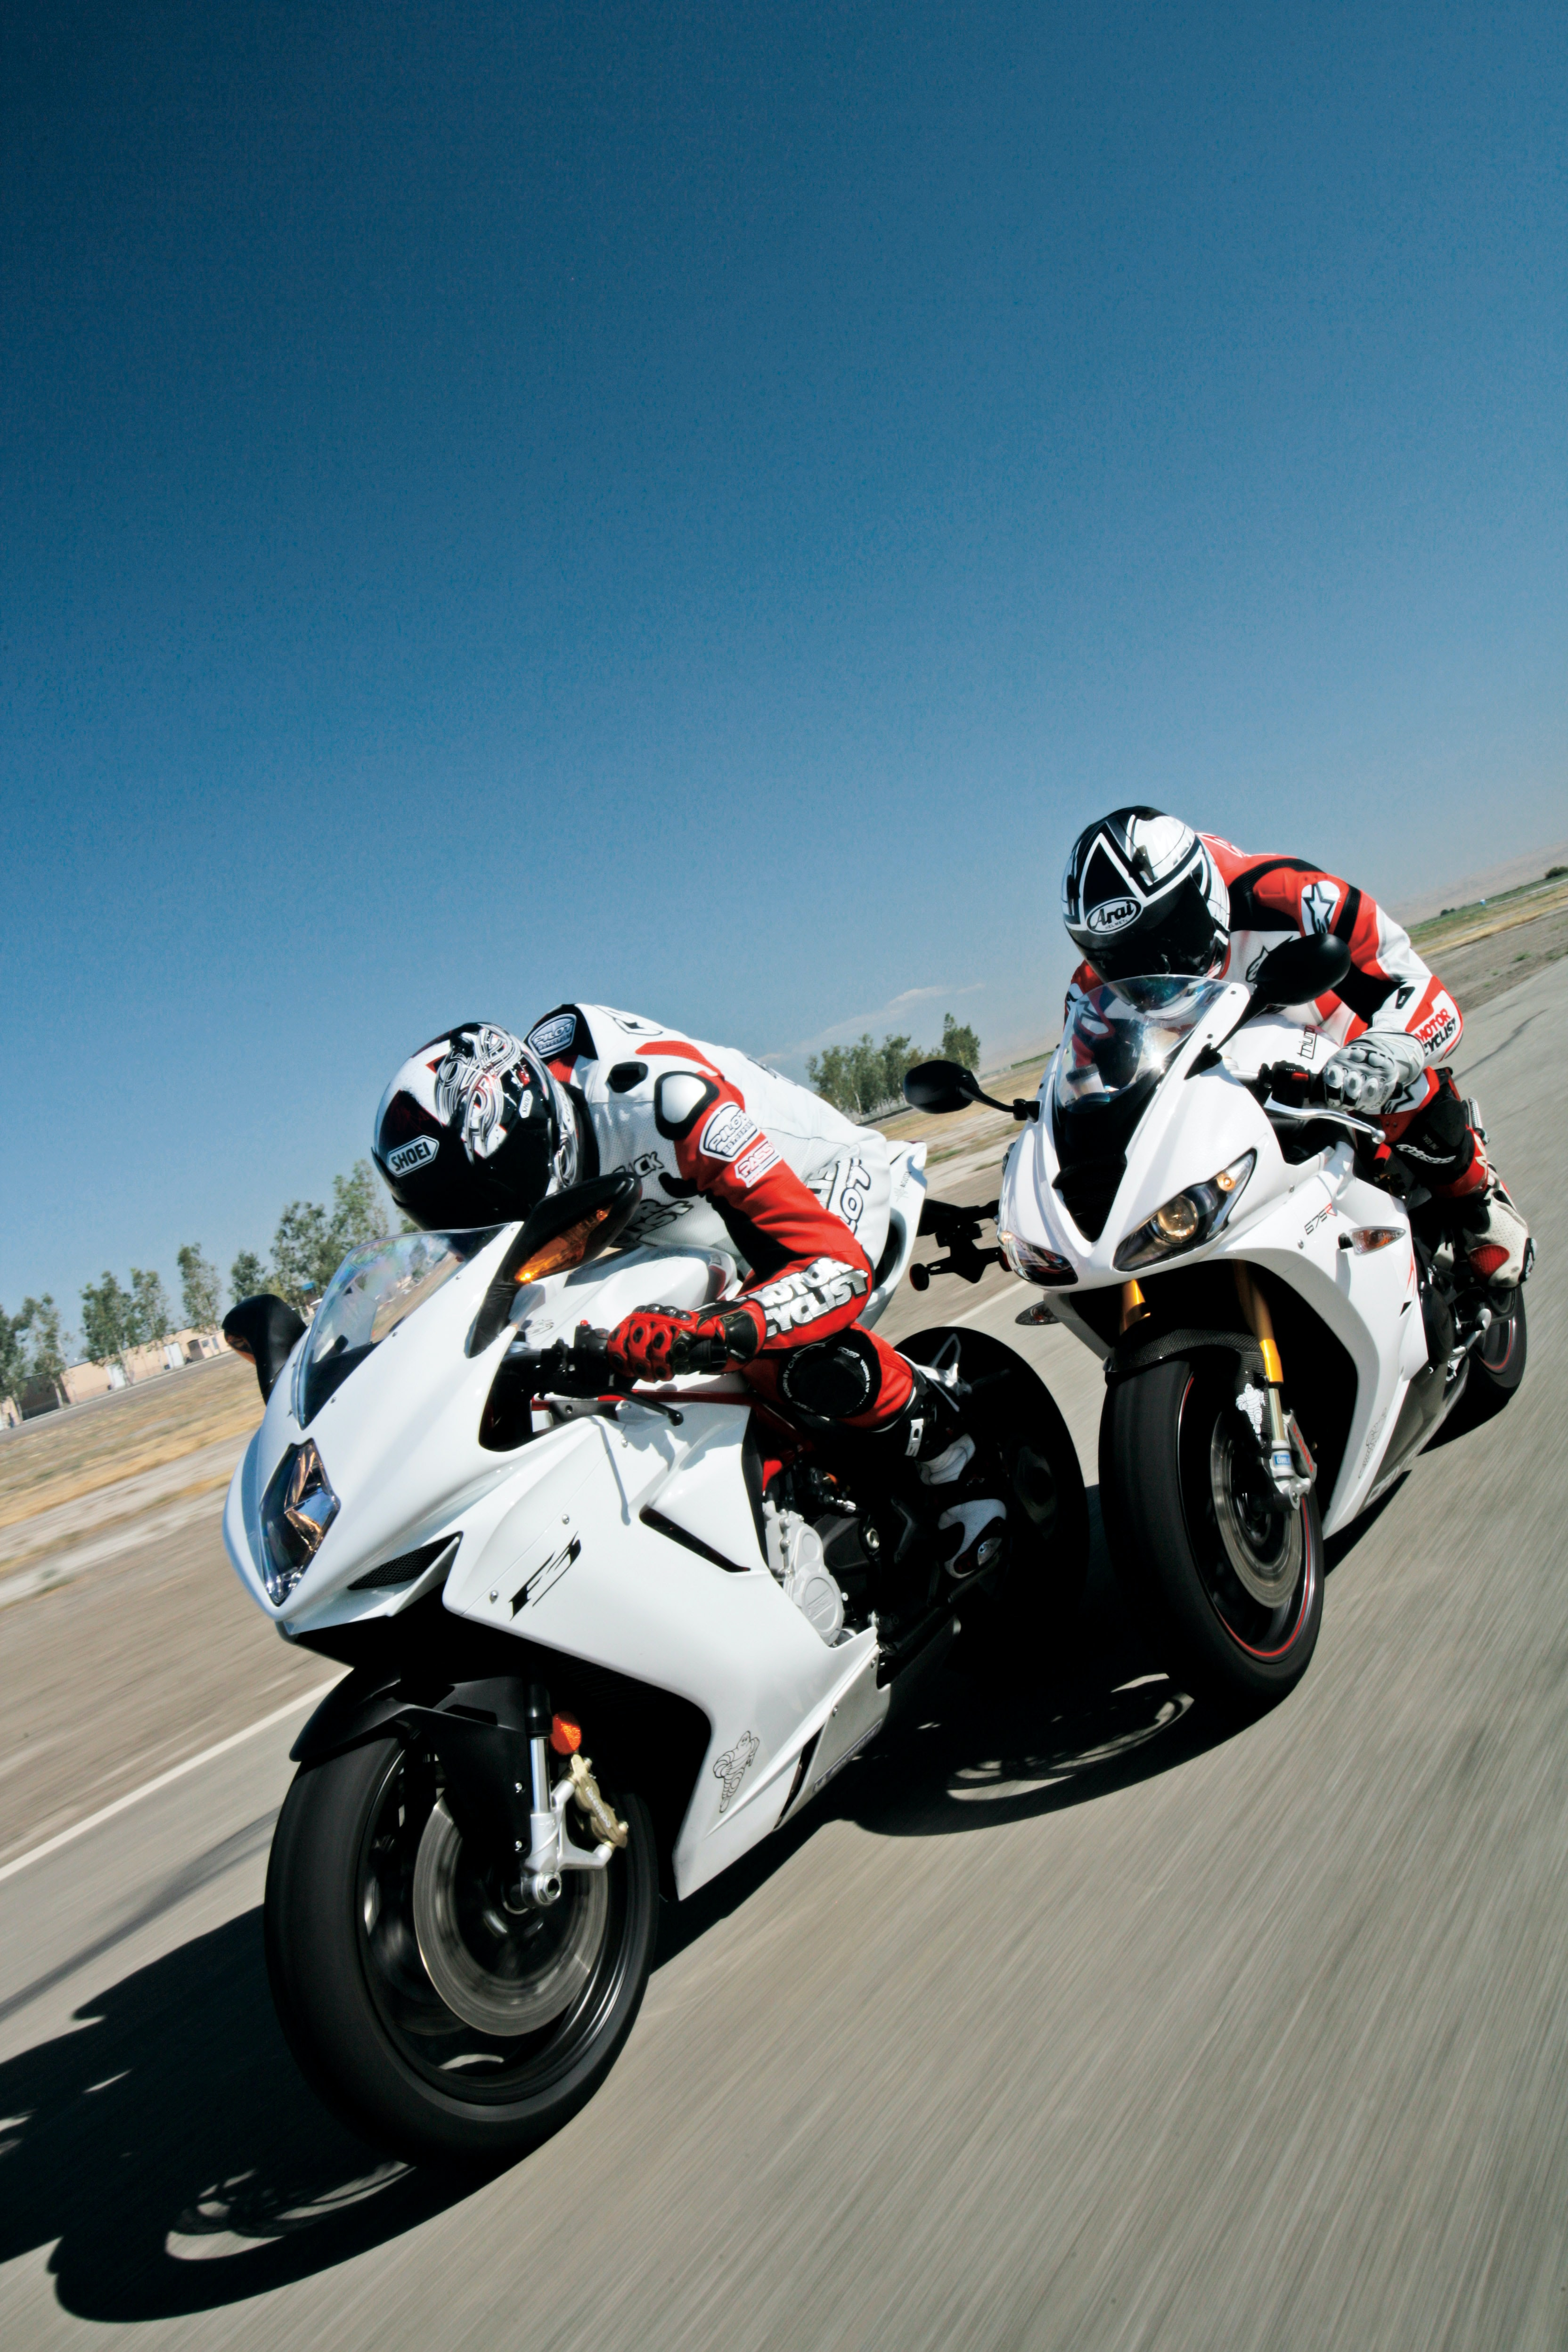 Two people in crash helmets on white motorcycles racing on a track under a blue sky